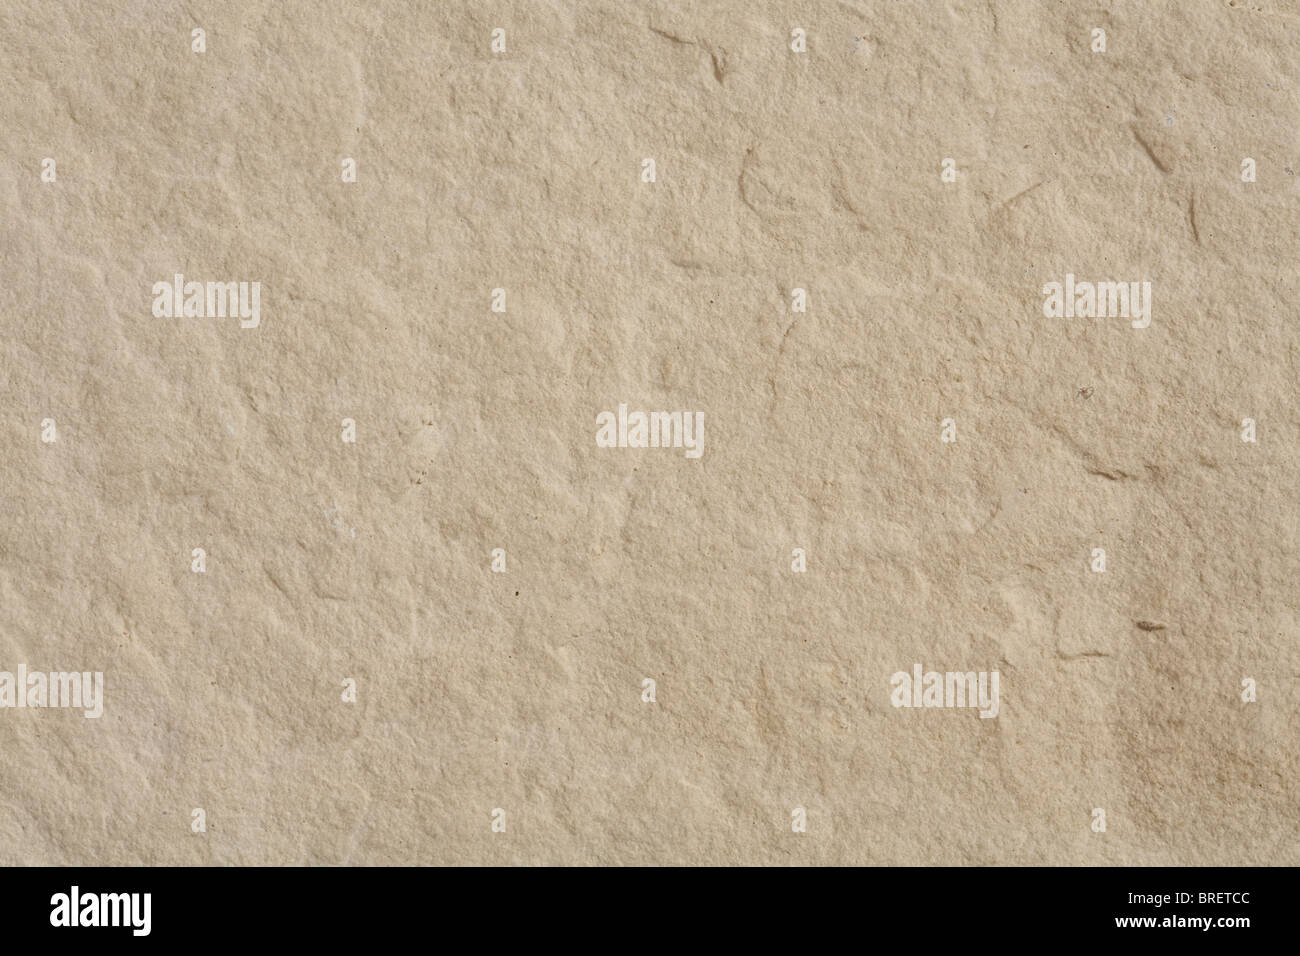 Accor Enviar suerte  Plain And Buff Colour High Resolution Stock Photography and Images - Alamy